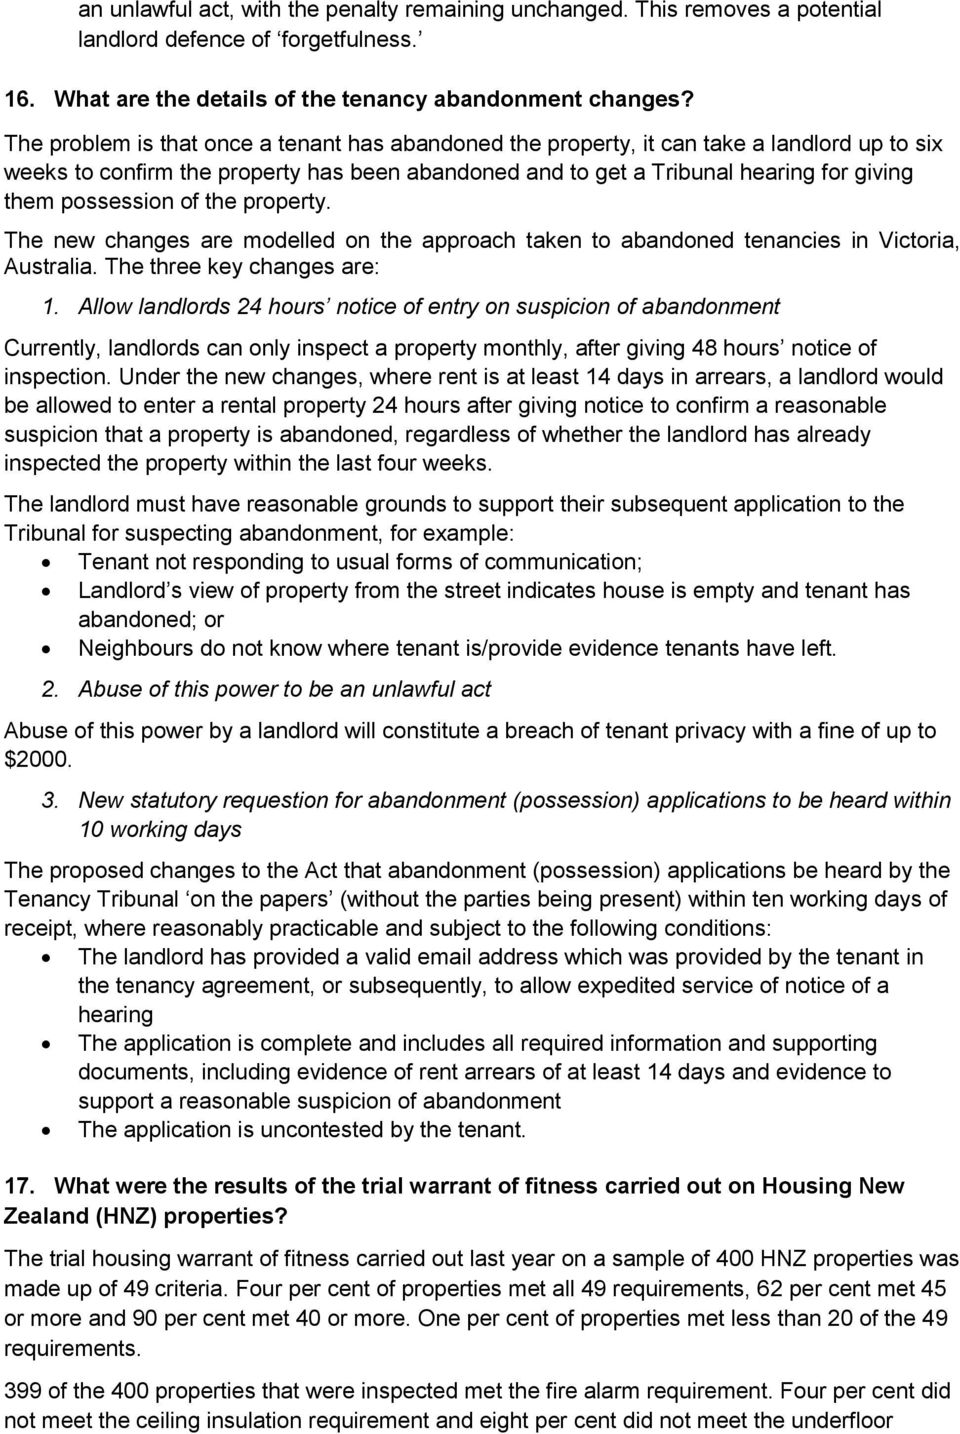 possession of the property. The new changes are modelled on the approach taken to abandoned tenancies in Victoria, Australia. The three key changes are: 1.